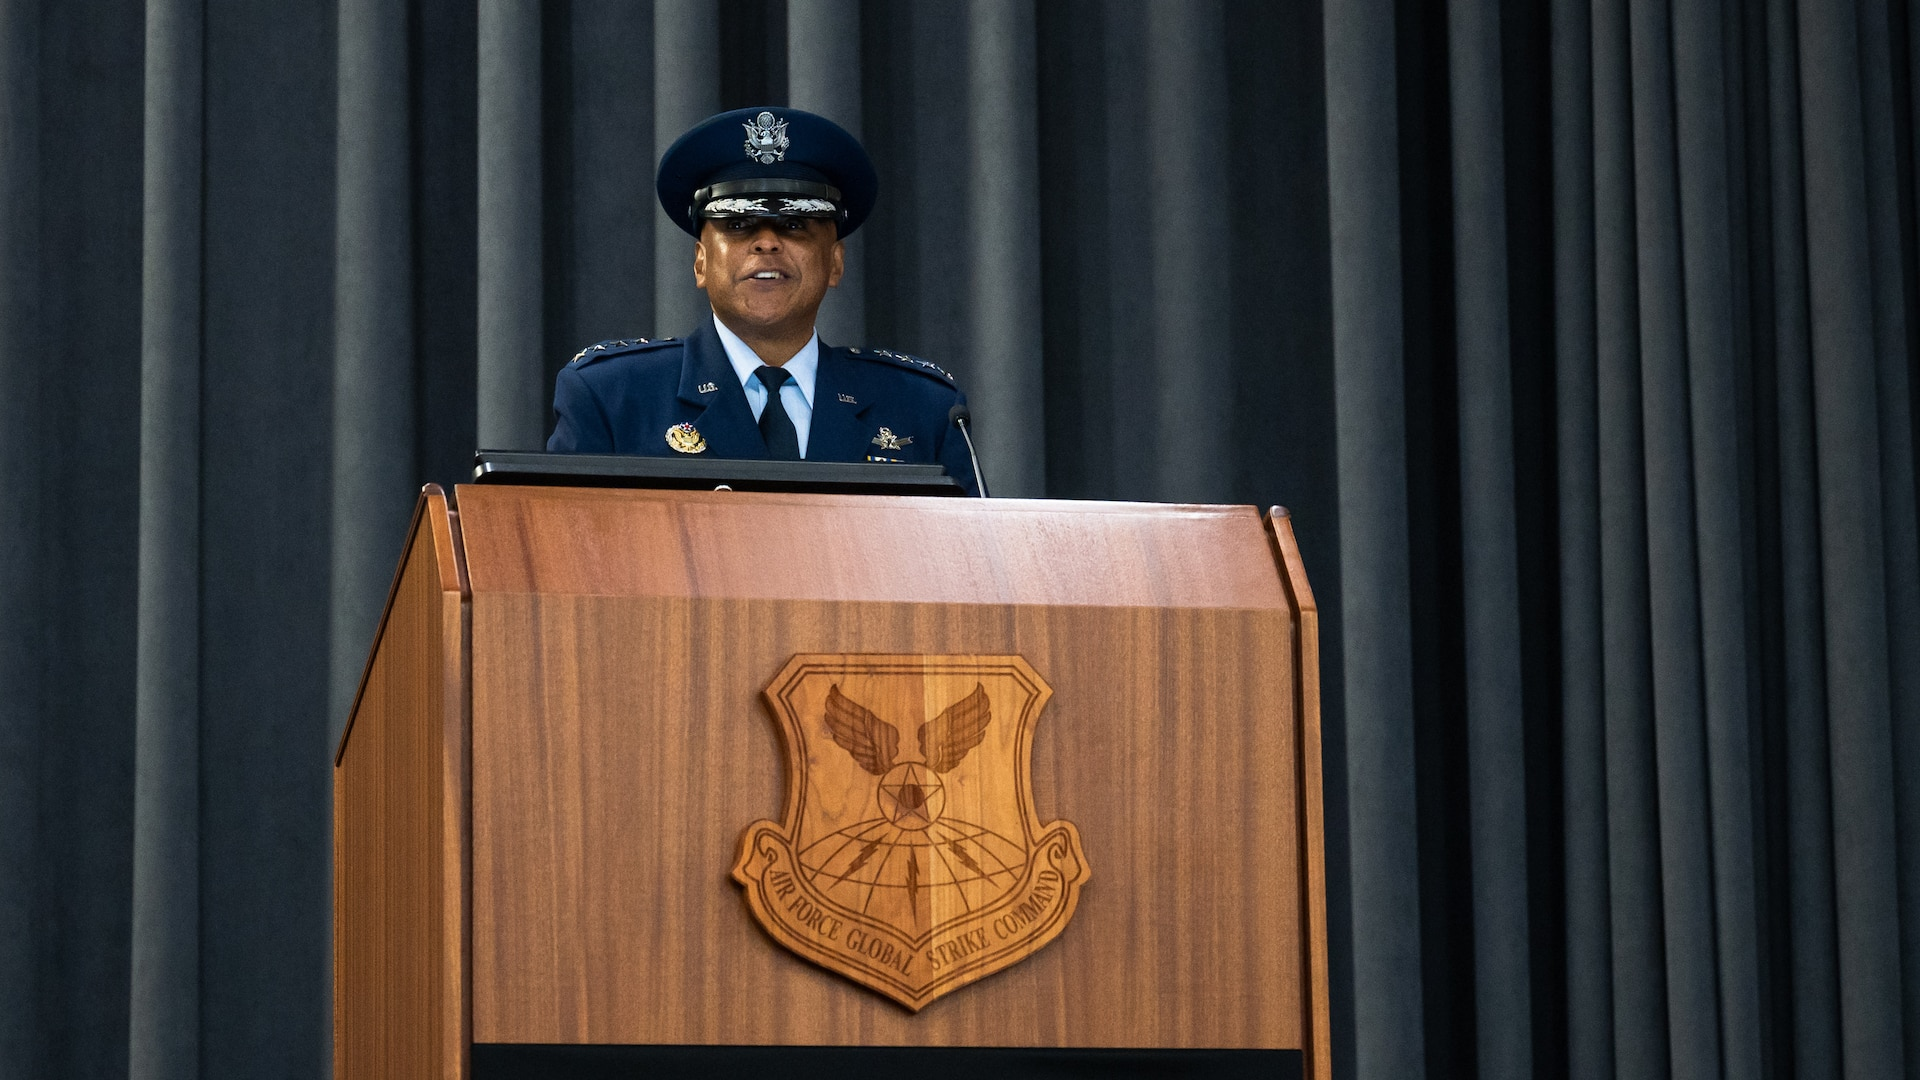 Gen. Anthony Cotton, incoming Air Force Global Strike Command commander, makes remarks during the AFGSC change of command ceremony at Barksdale Air Force Base, Louisiana, Aug. 27, 2021. Previously serving as AFGSC's deputy commander, Cotton takes command of the 33,700 professionals who provide the nation with strategic deterrence, global strike and combat support anytime, anywhere. (U.S. Air Force photo by Senior Airman Jacob B. Wrightsman)